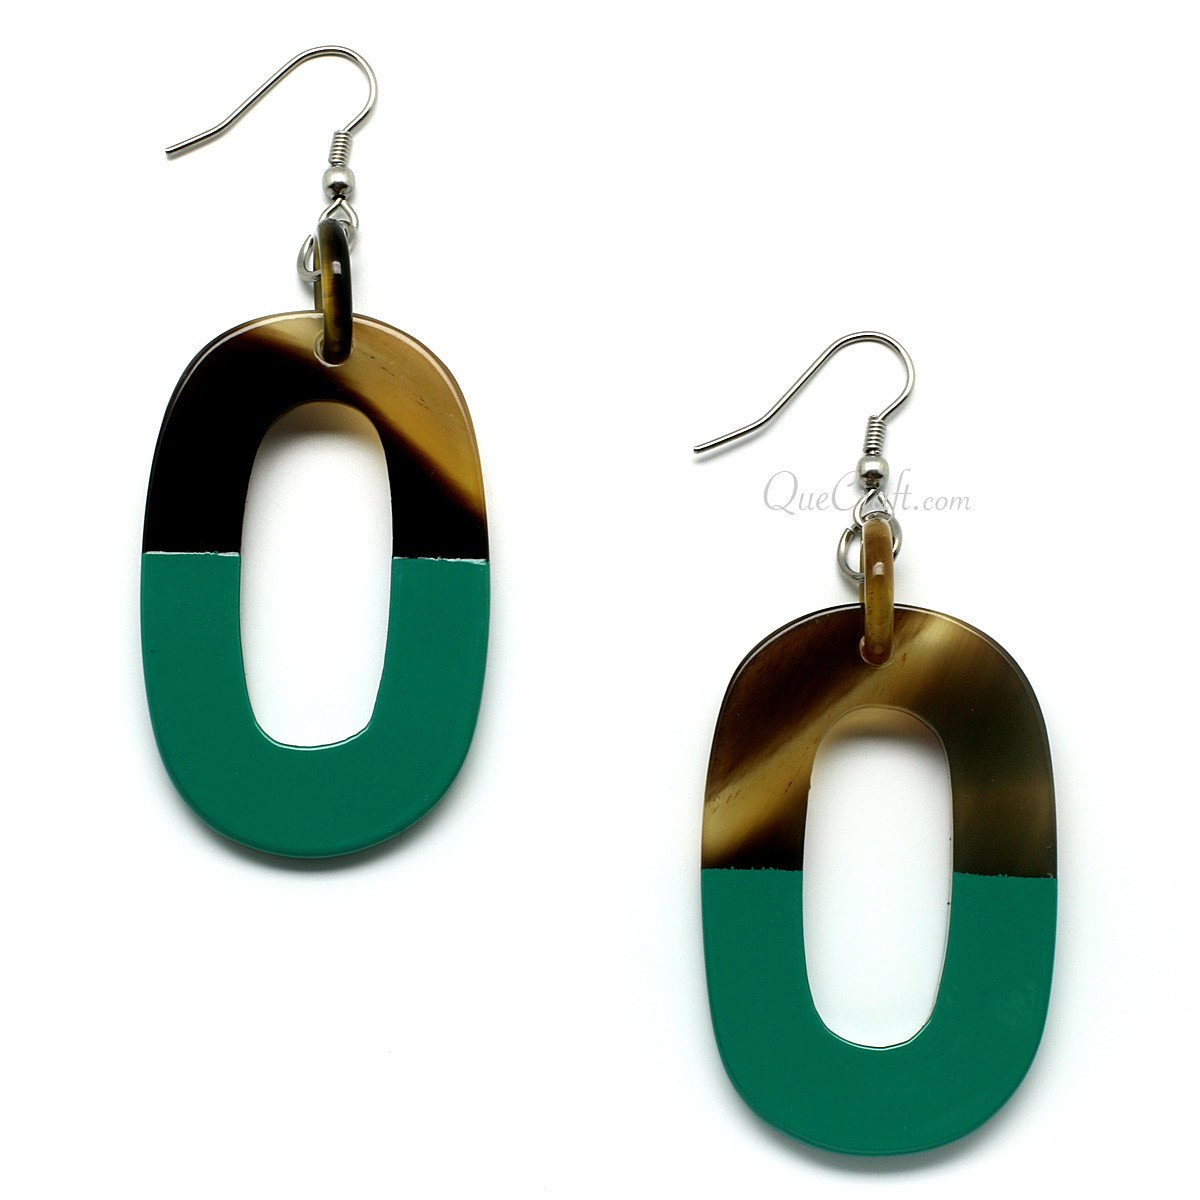 Horn & Lacquer Earrings #9743 - HORN.JEWELRY by QueCraft